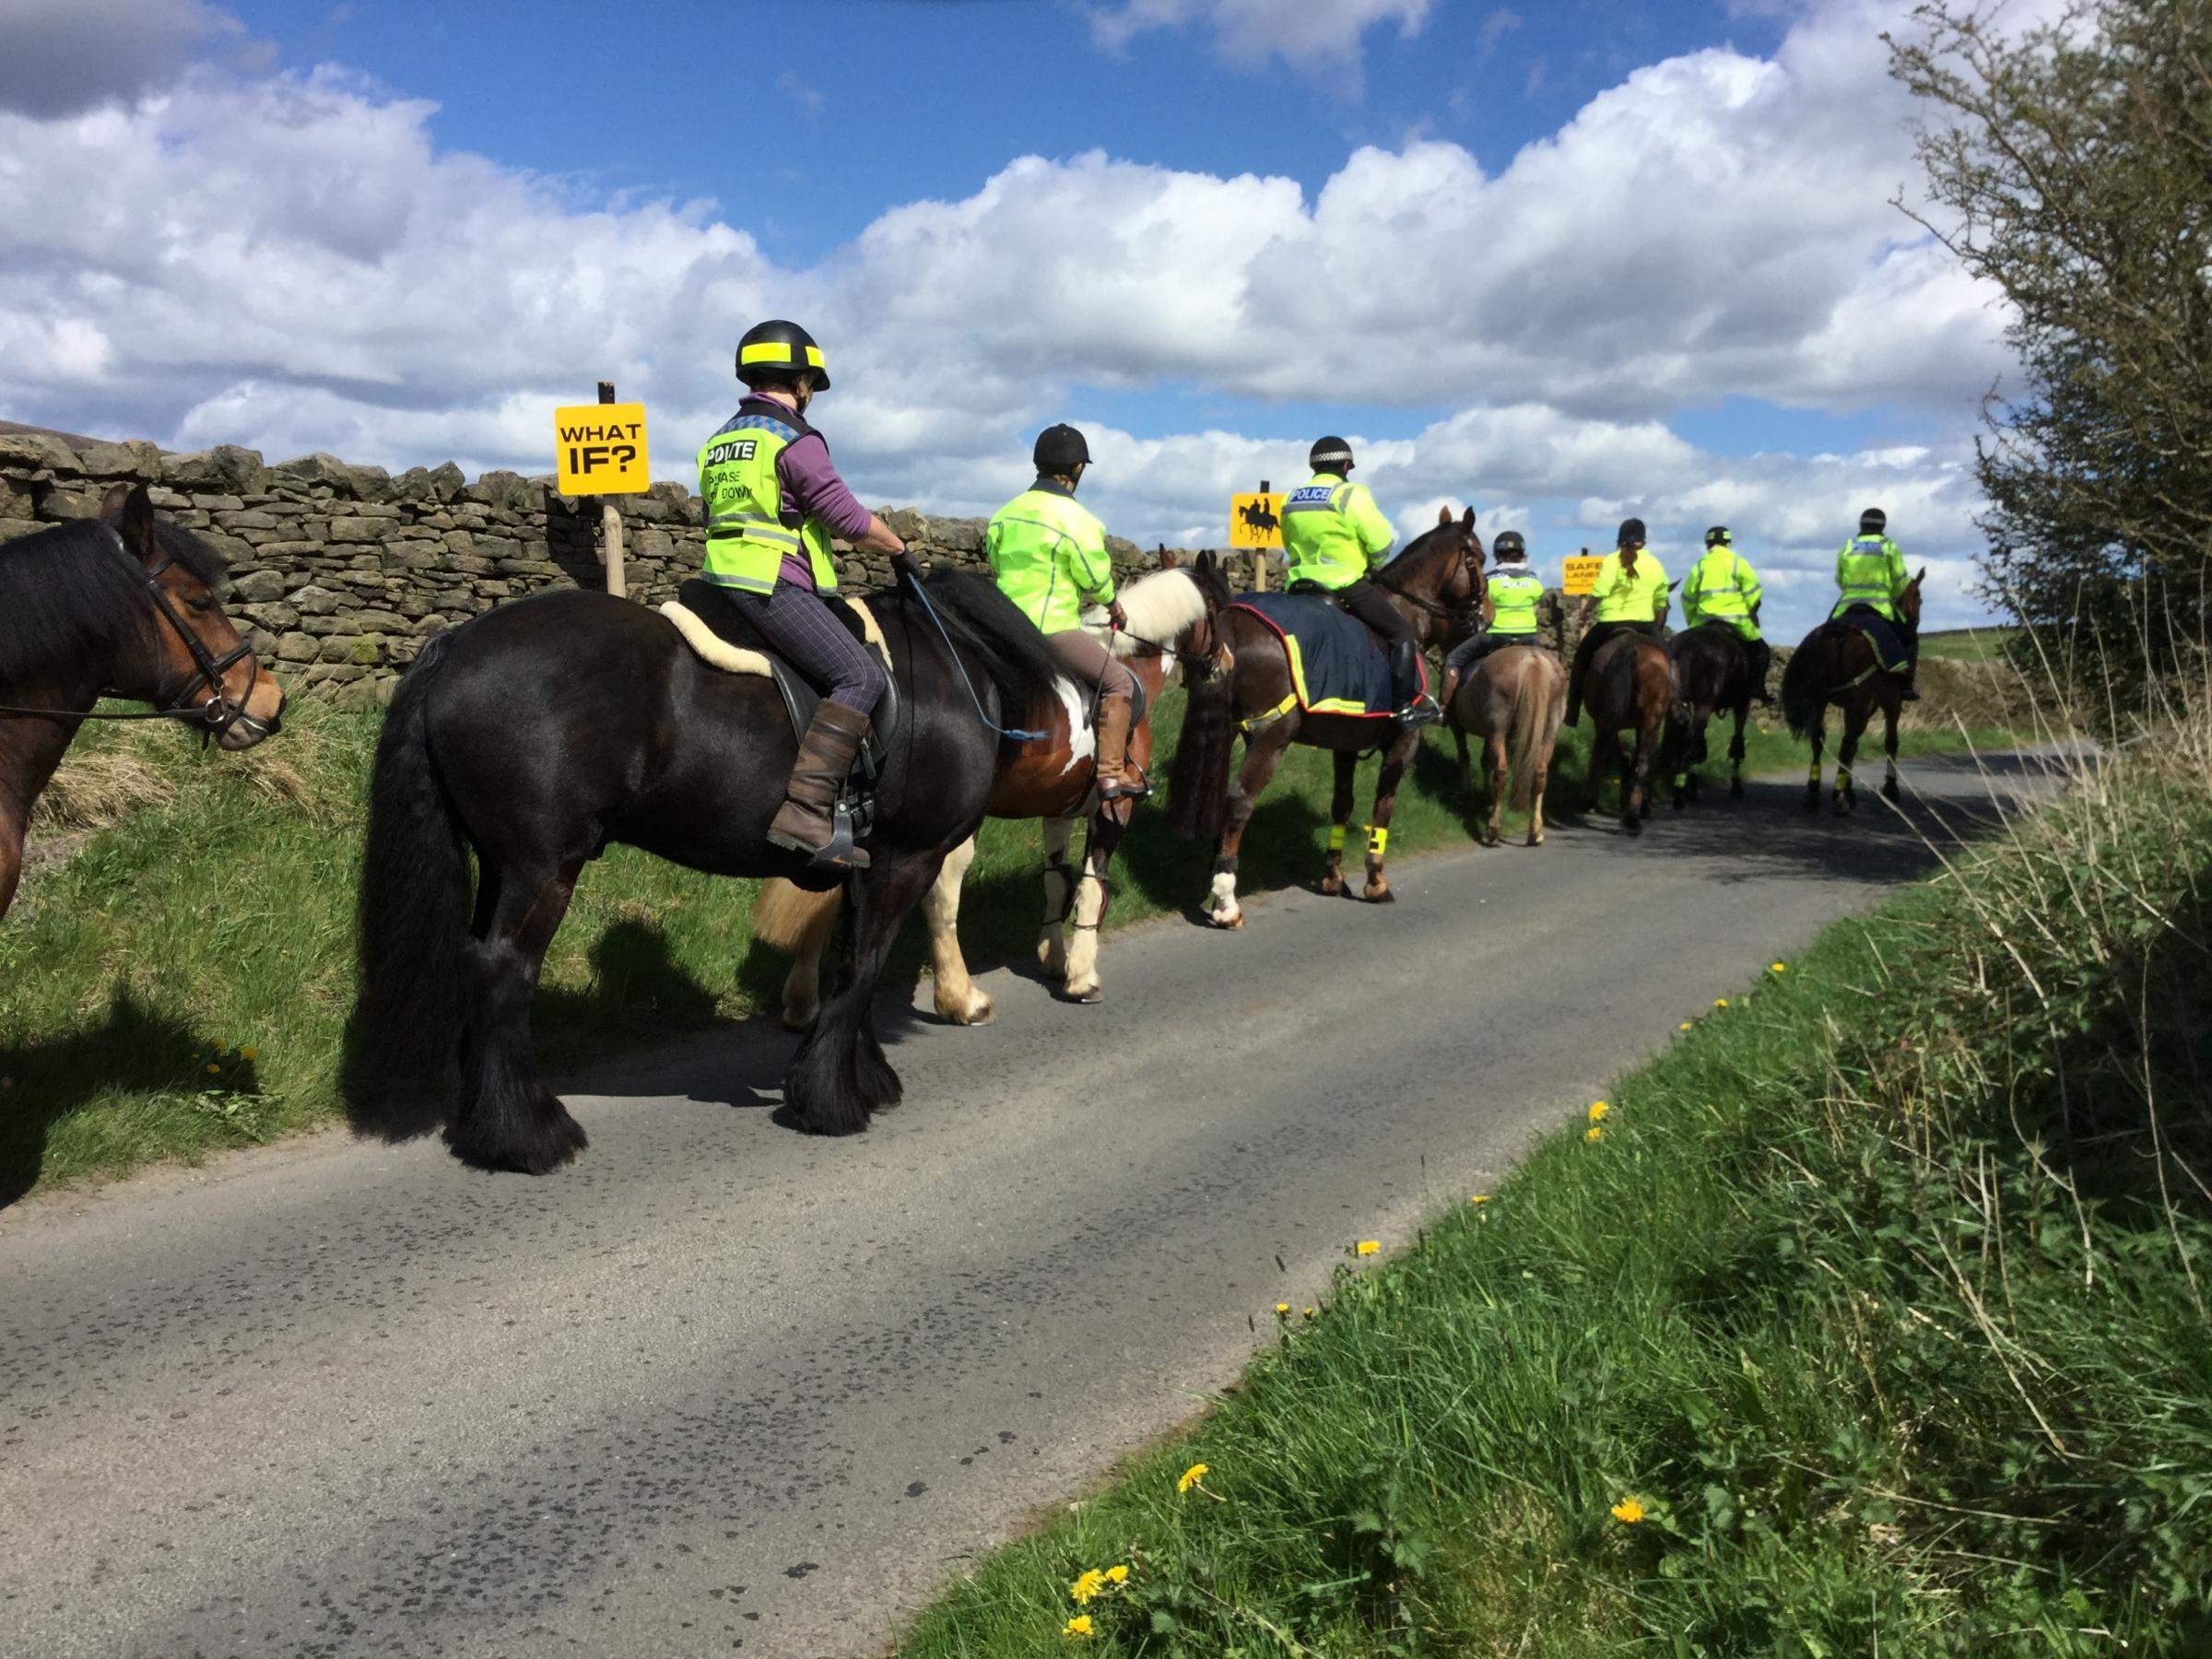 Charity urging changes to speed limits to improve road safety for horse riders